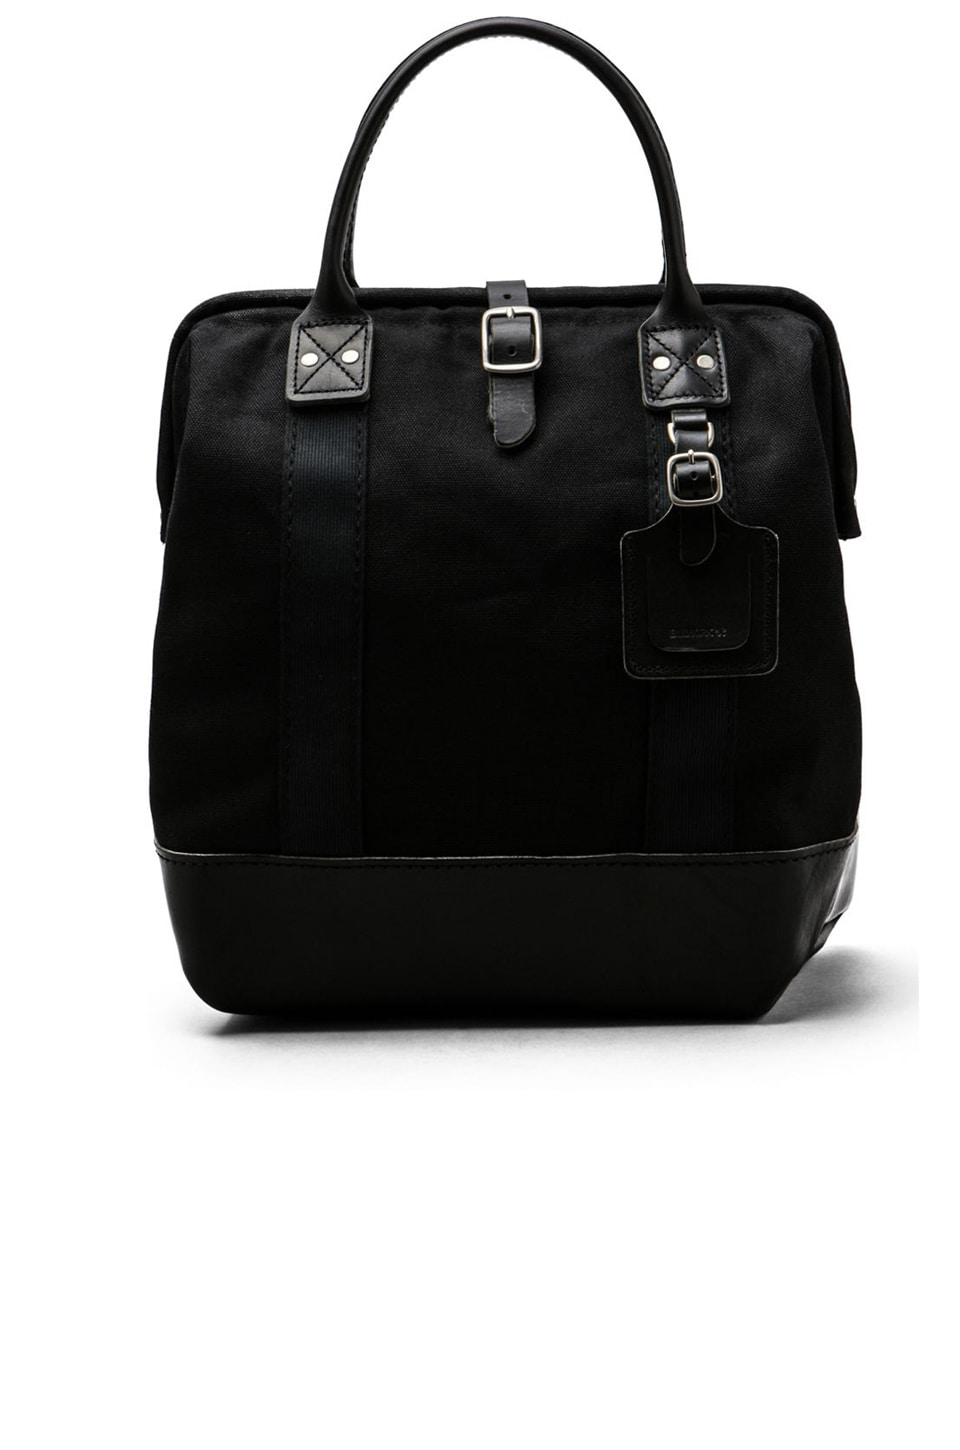 Billykirk No. 164 Small Carryall in Black